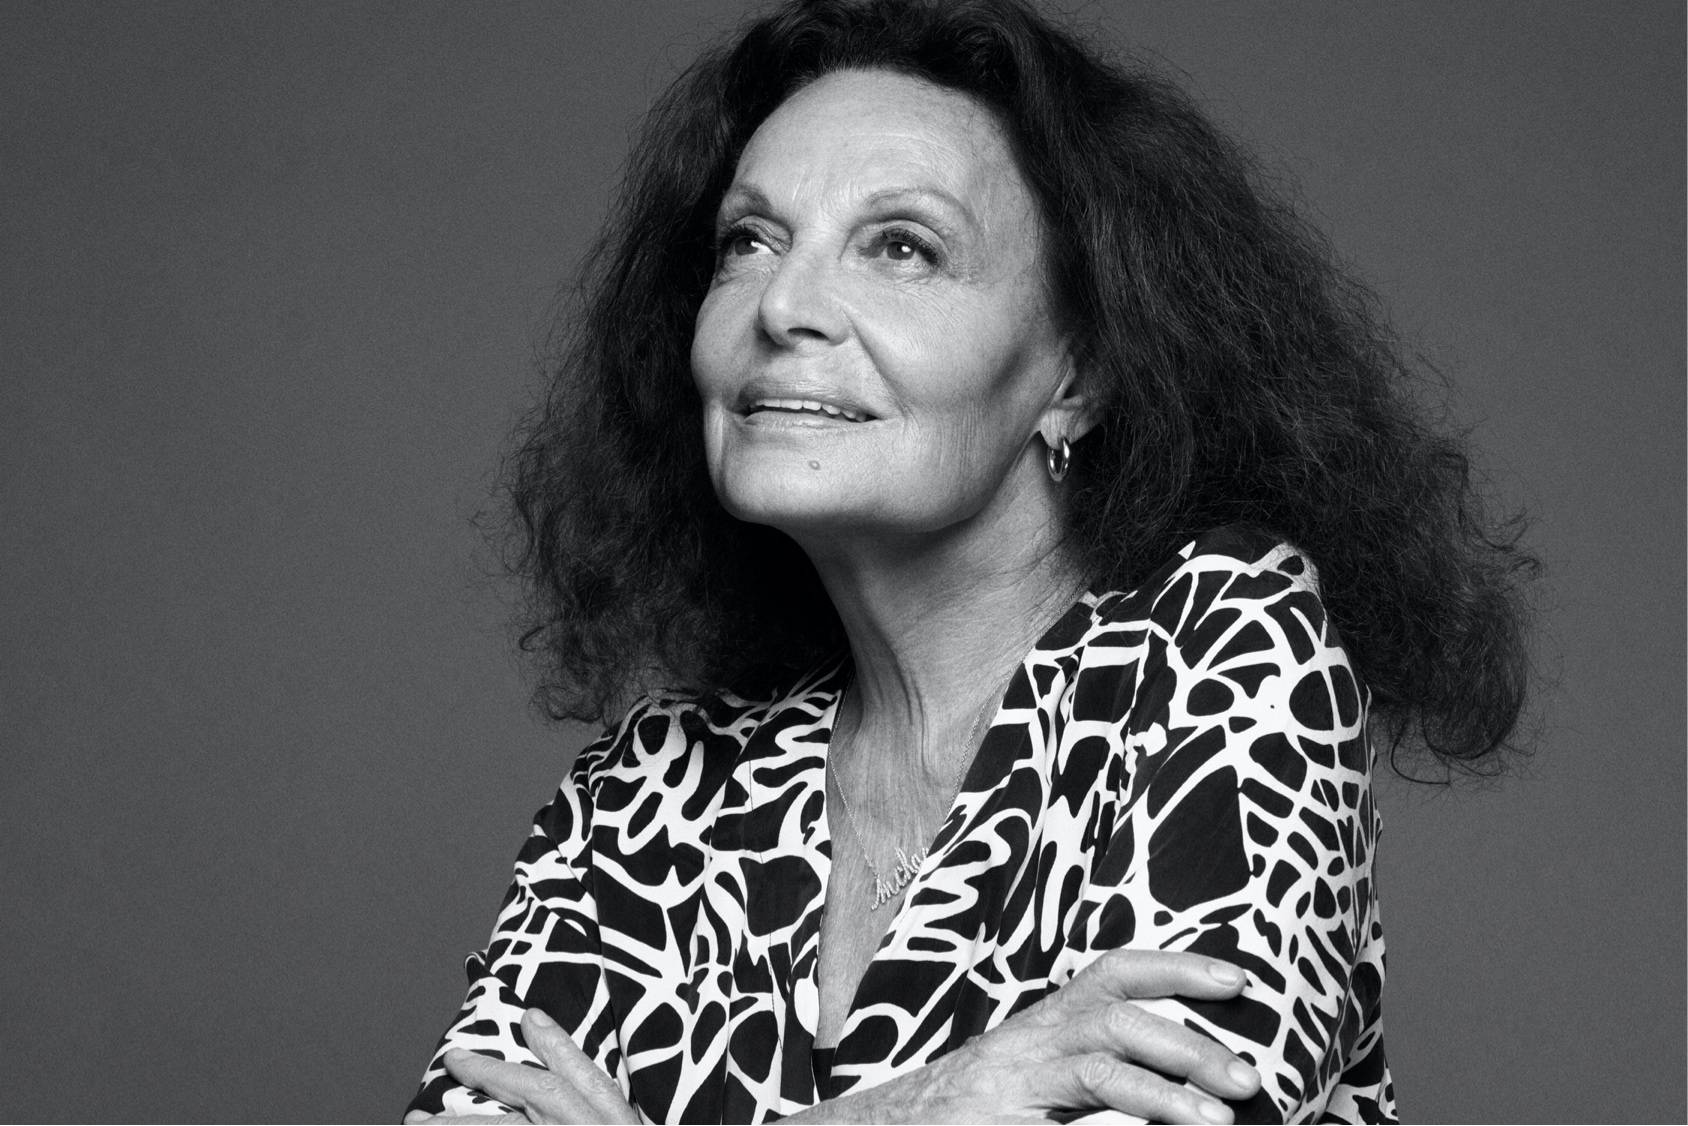 B&W portrait of Diane Von Furstenberg in a black and white blouse, smiling and looking up.